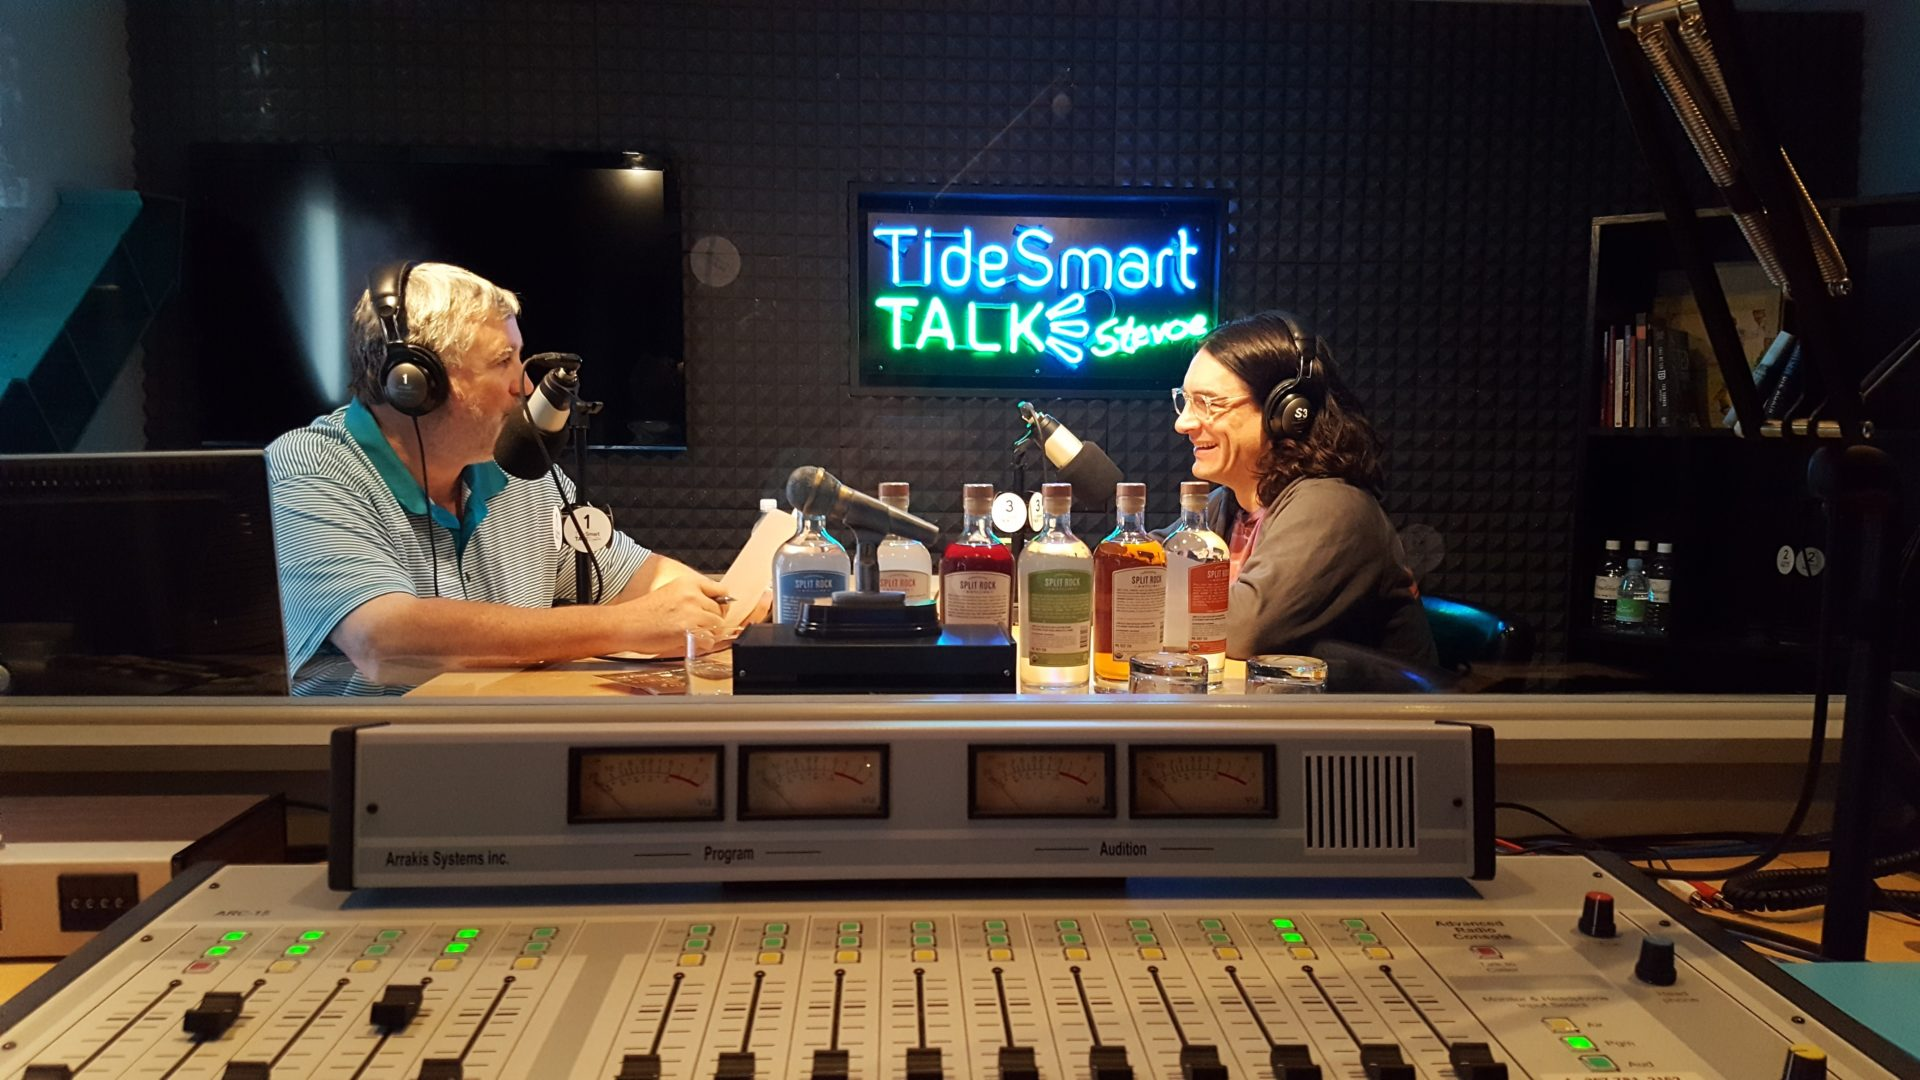 Host of TideSmart Talk with Stevoe, Steve Woods, welcomed Topher Mallory(at right).